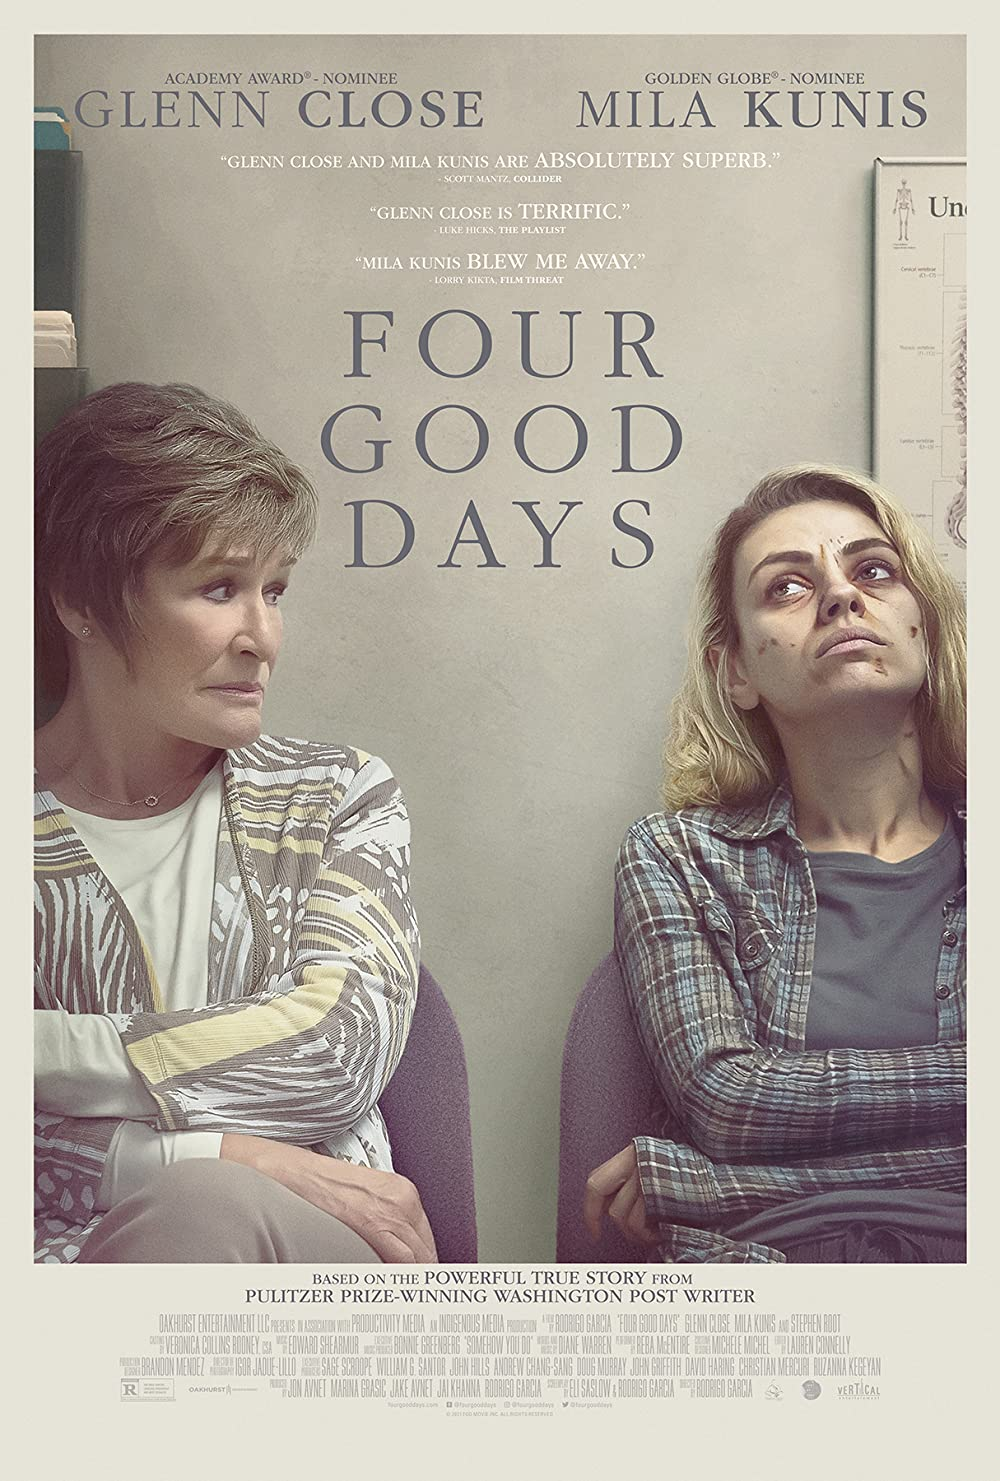 Download Four Good Days (2020) WebRip 720p Dual Audio [Hindi (Voice Over) Dubbed + English] [Full Movie] Full Movie Online On 1xcinema.com